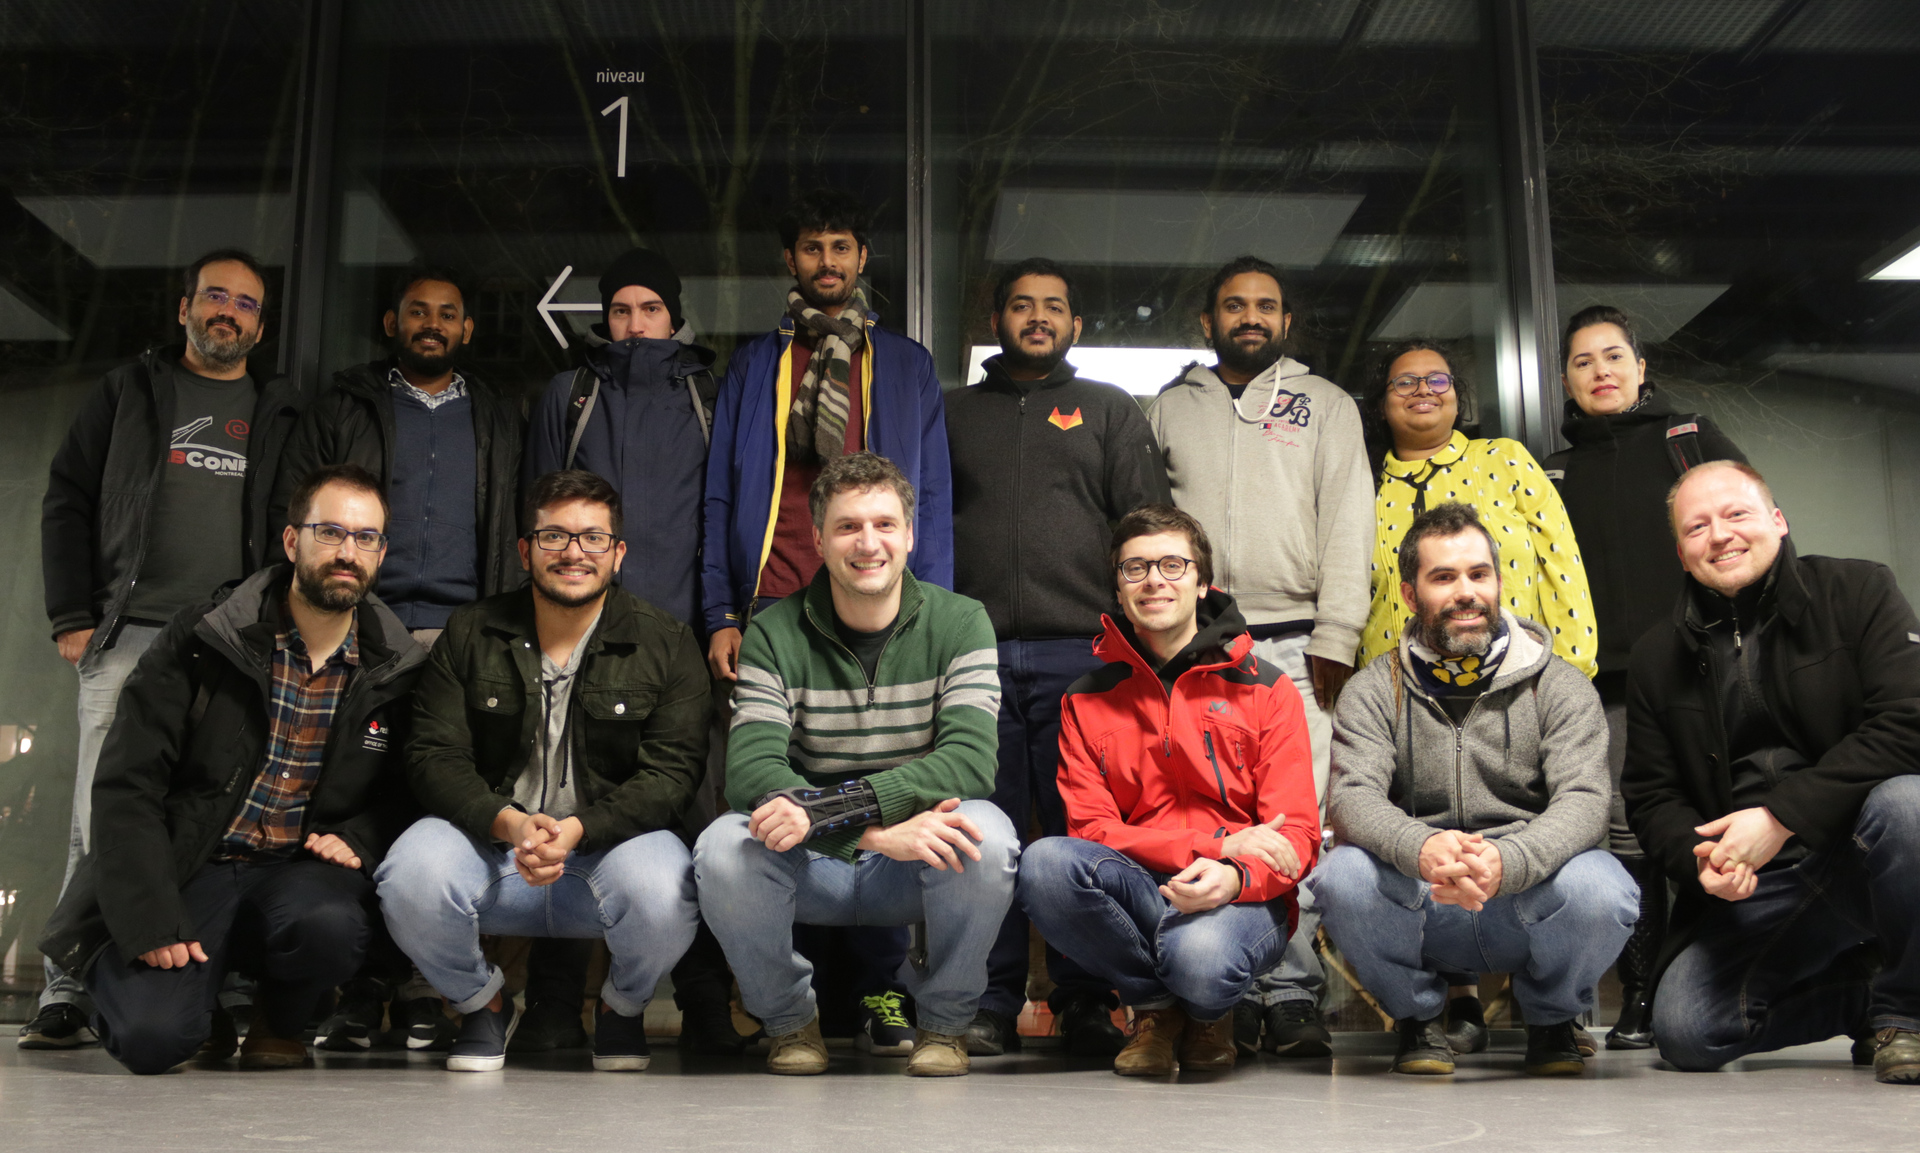 Group photo of the attendees of the Ruby Team Sprint 2020 in Paris